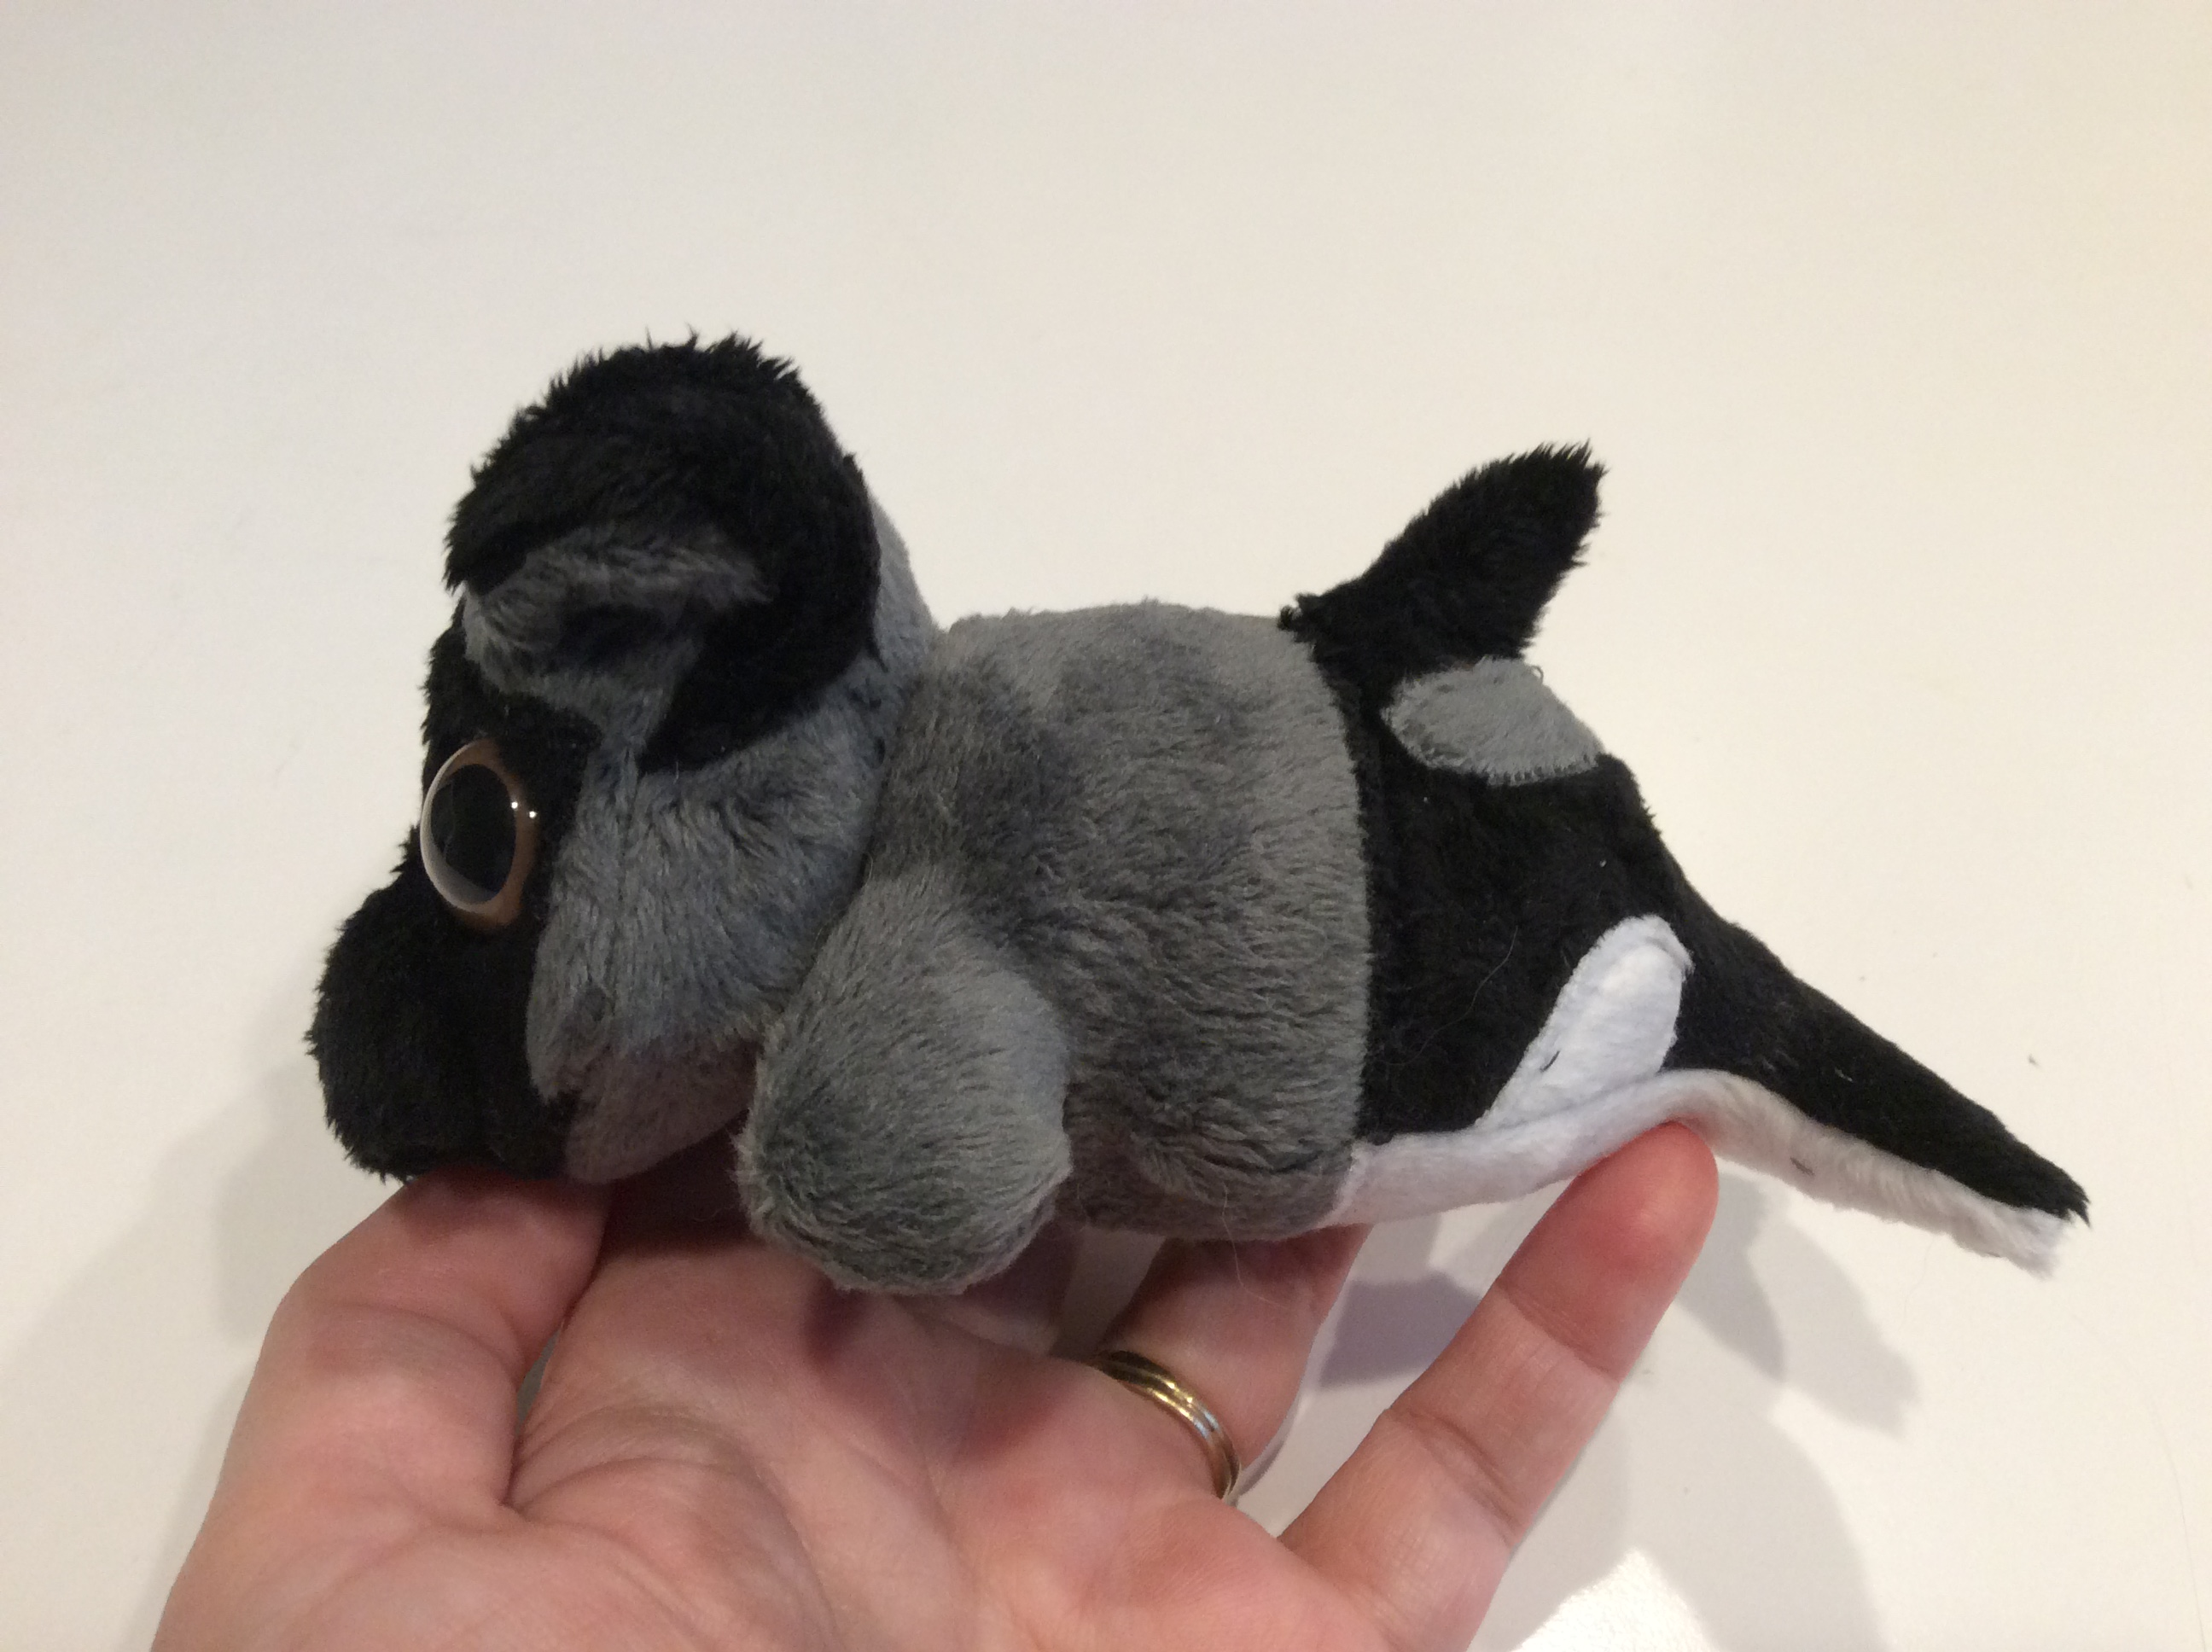 Side view of a plush pug/orca mermaid.